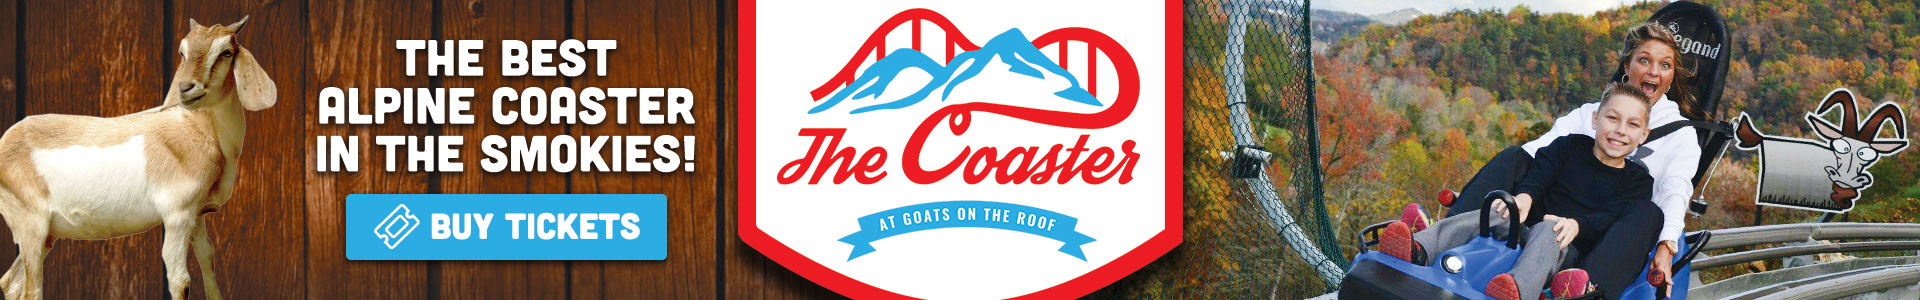 Ad - The Coaster At Goats On The Roof: Click to buy tickets.